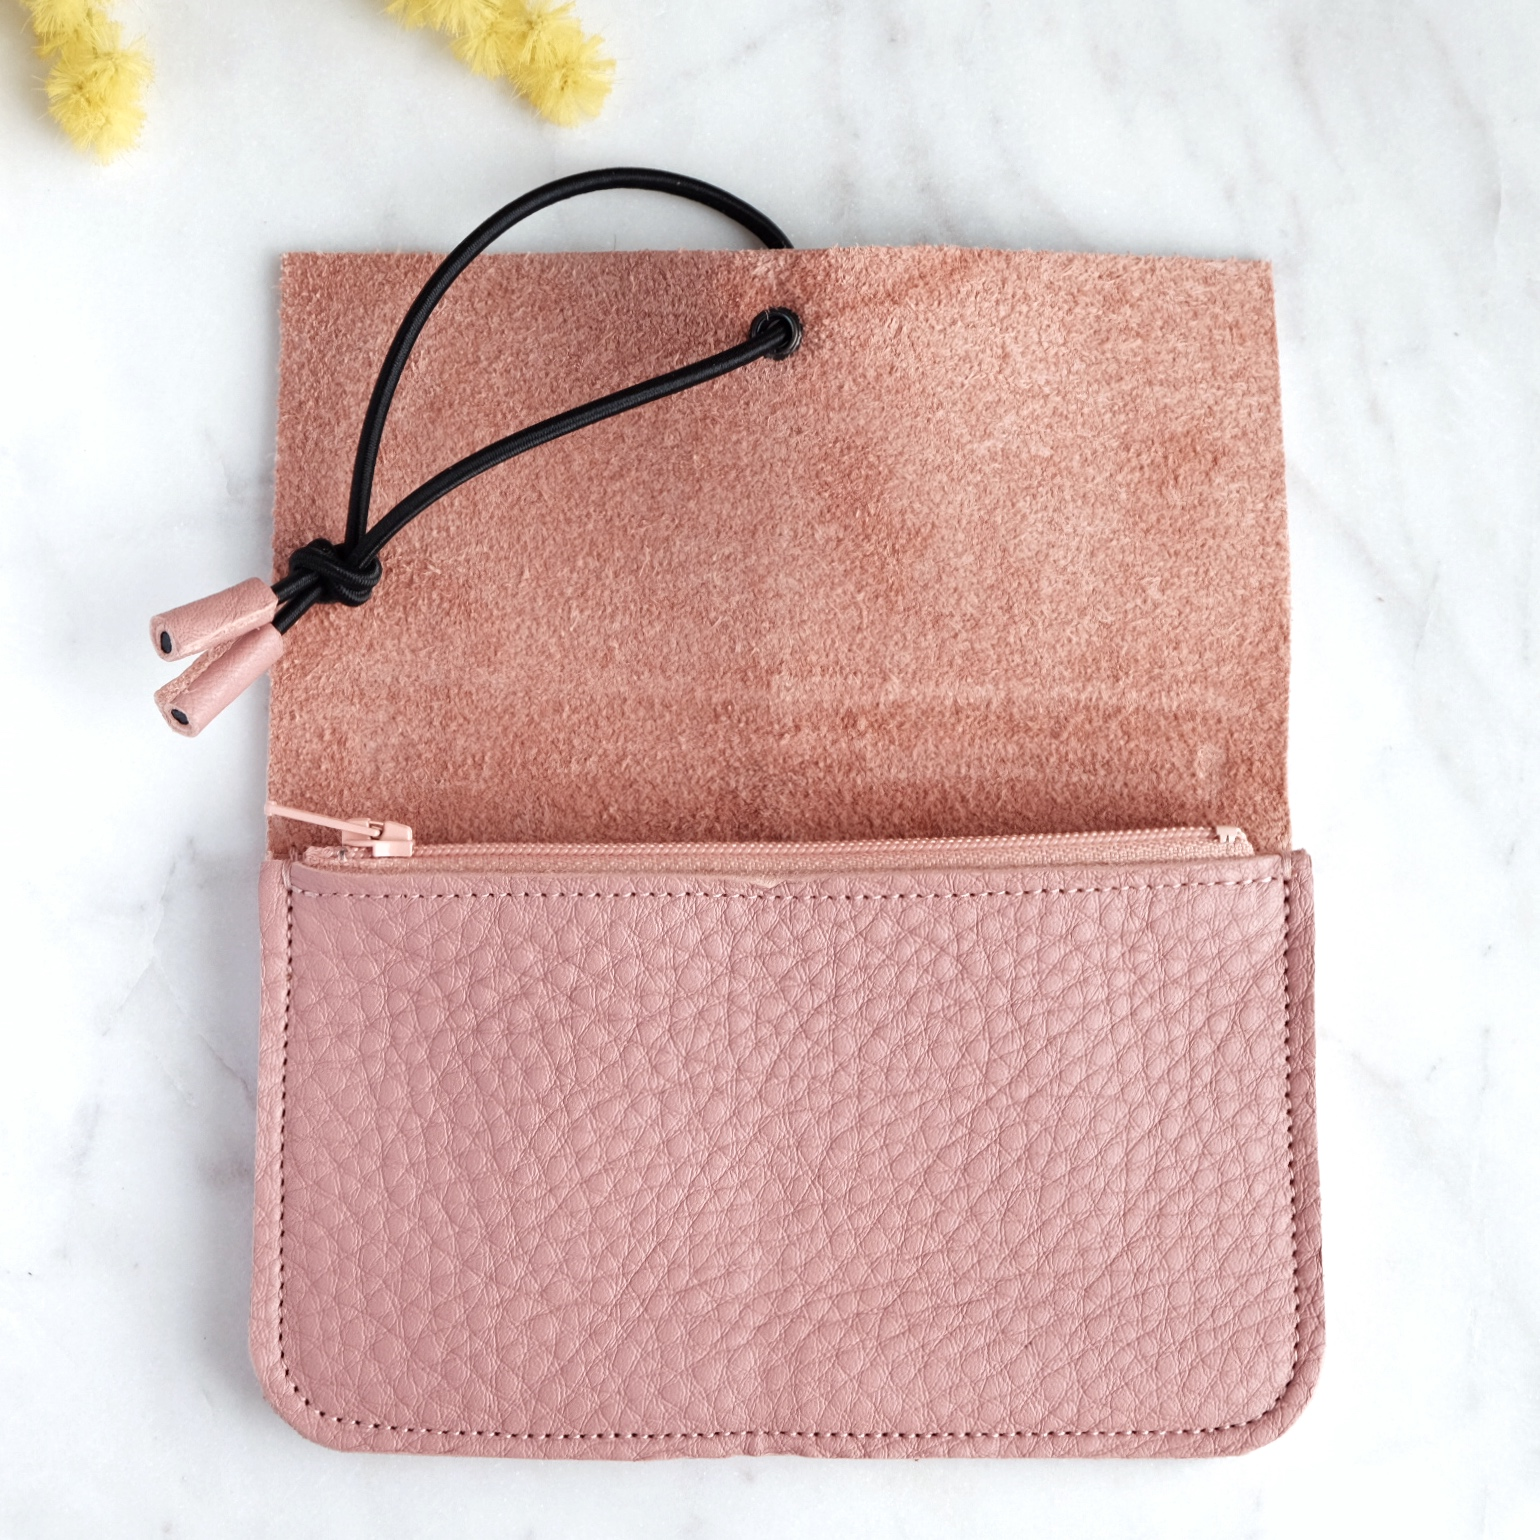 MONEDERO MEDIANO DUSTY PINK 2 MISHA BARCELONA